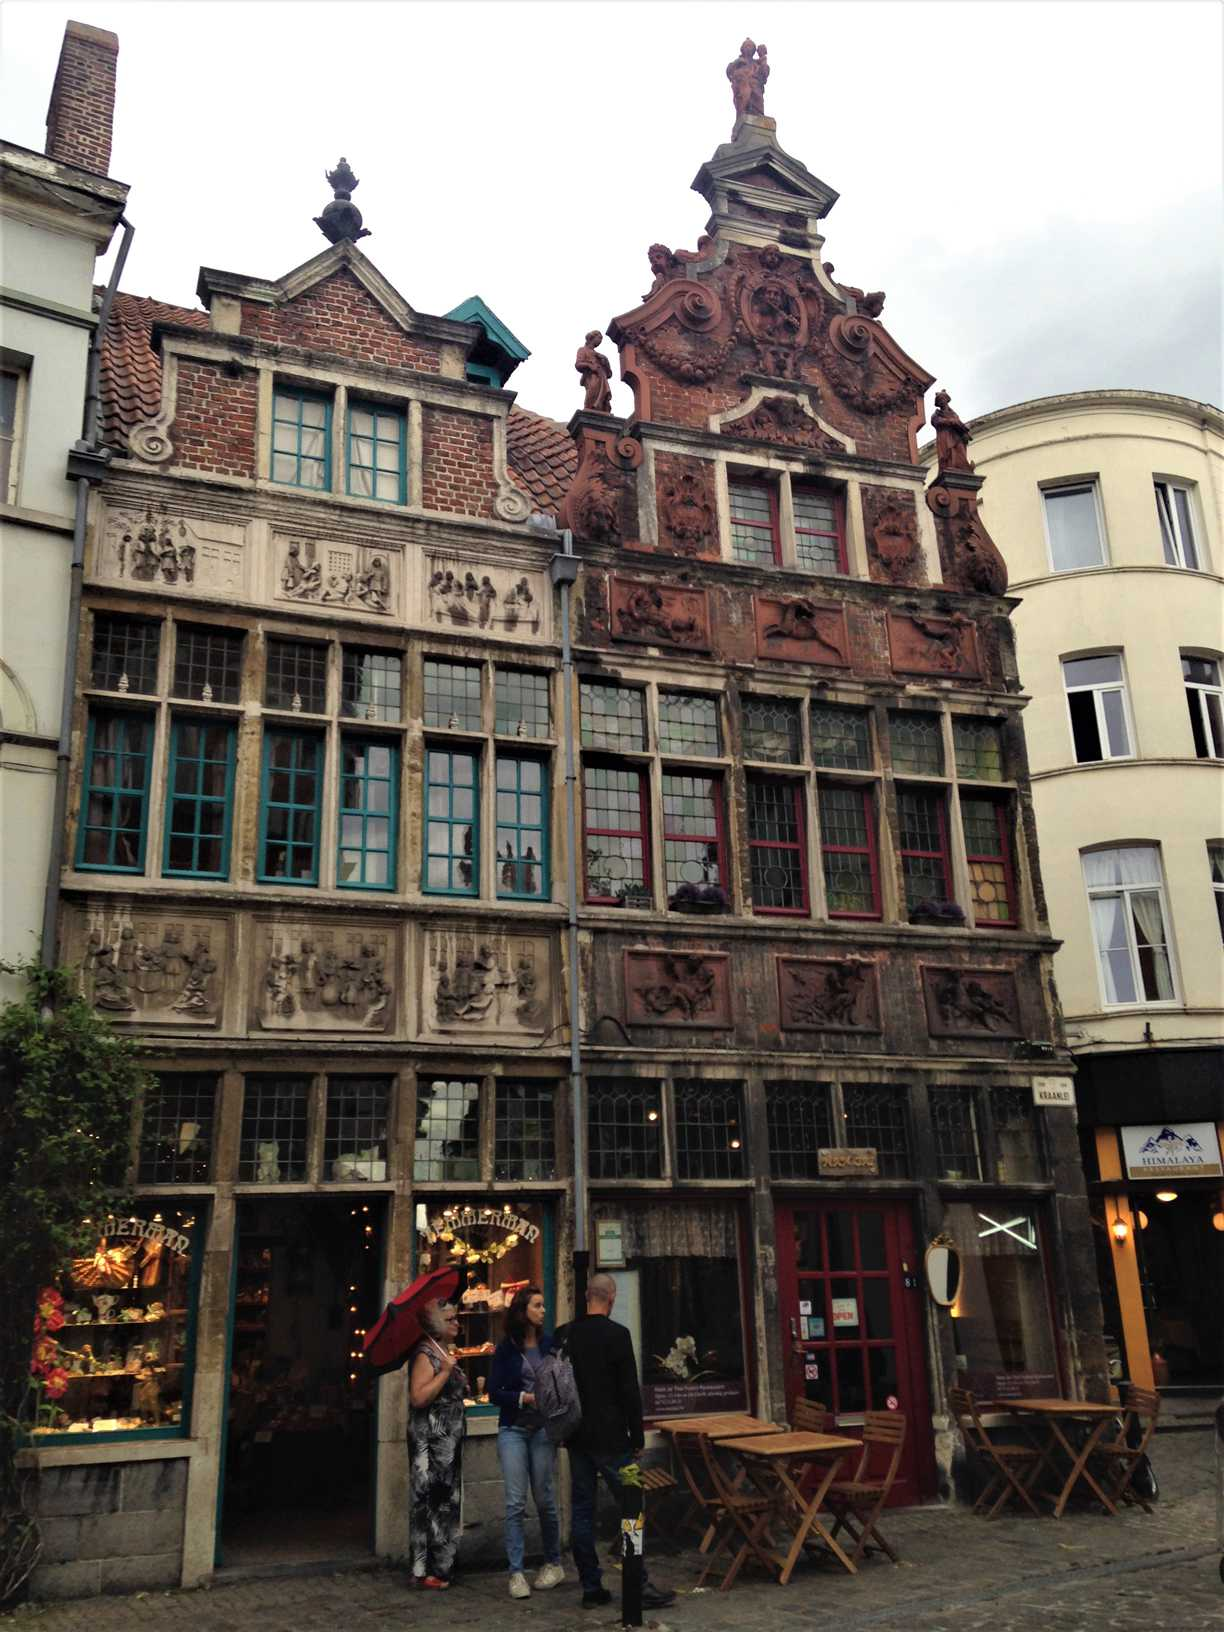 A picture of a unique brick building in Ghent, Belgium with stone carvings on the facade and gables. Tables and chairs are outside of the building, which is on a cobblestone street.